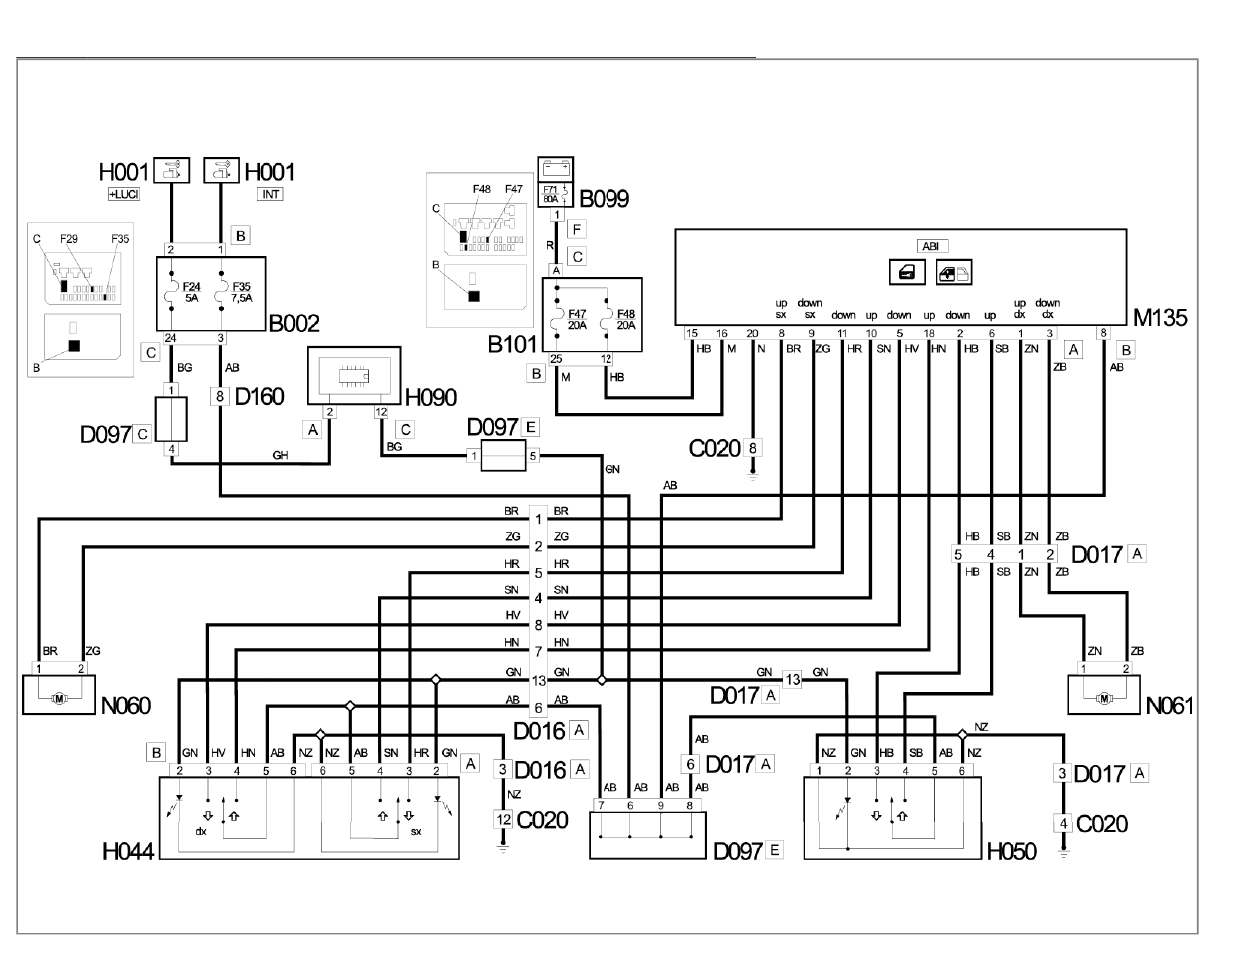 Fiat Ducato Electrical Diagram Detailed Wiring Diagrams Motorhome Misc Documents Pdf Dimensions